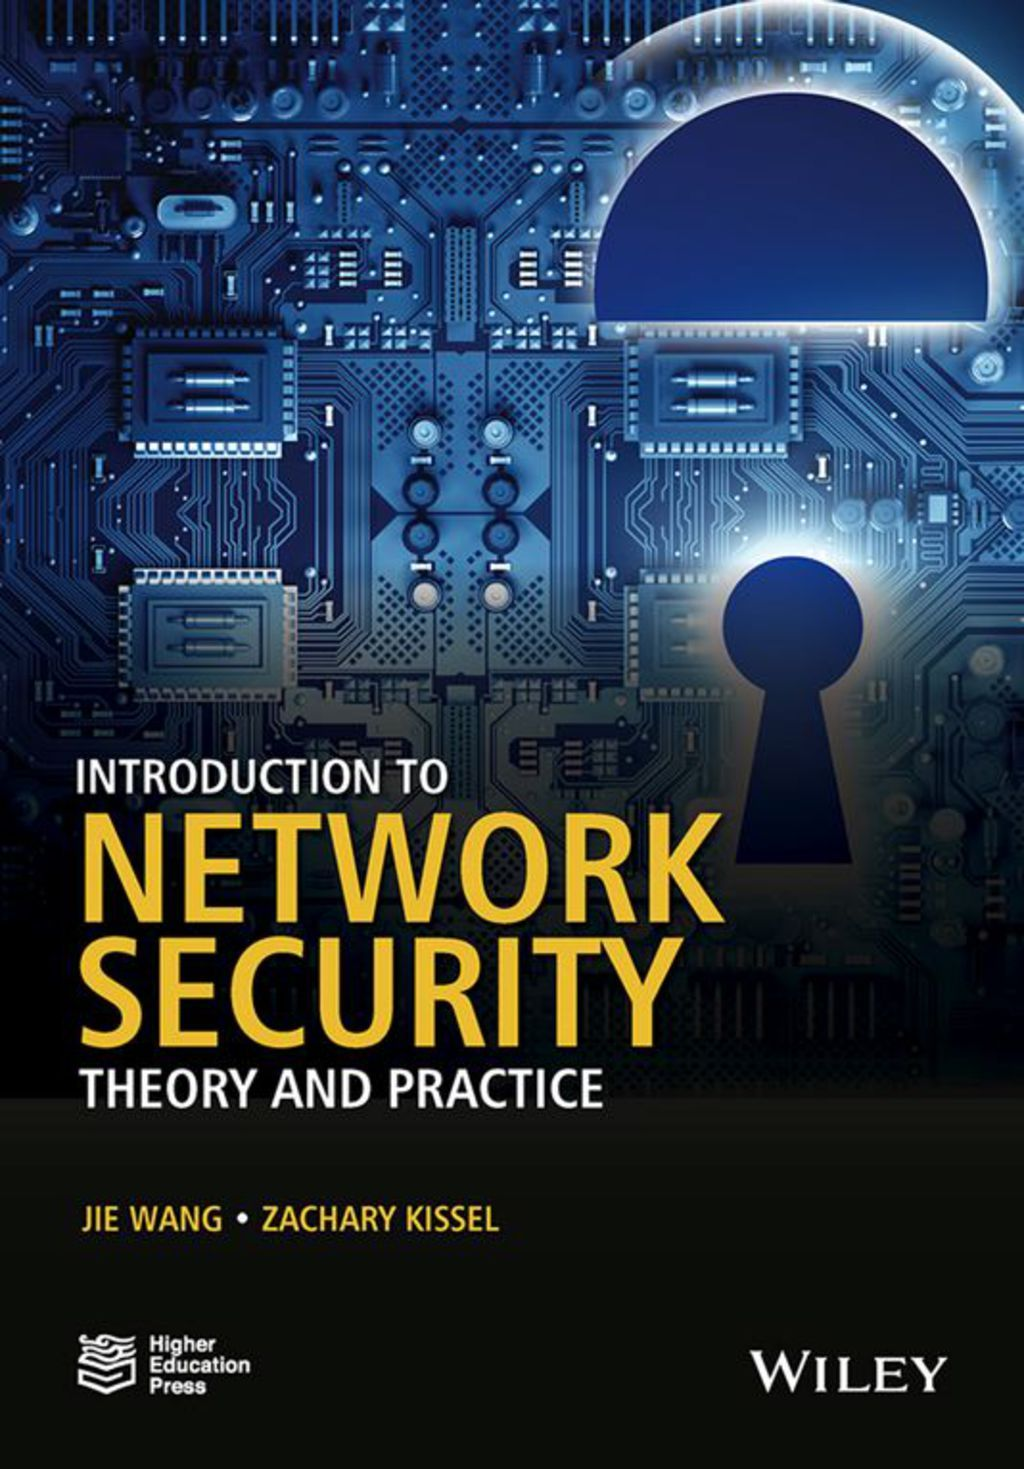 Introduction to Network Security Theory and Practice